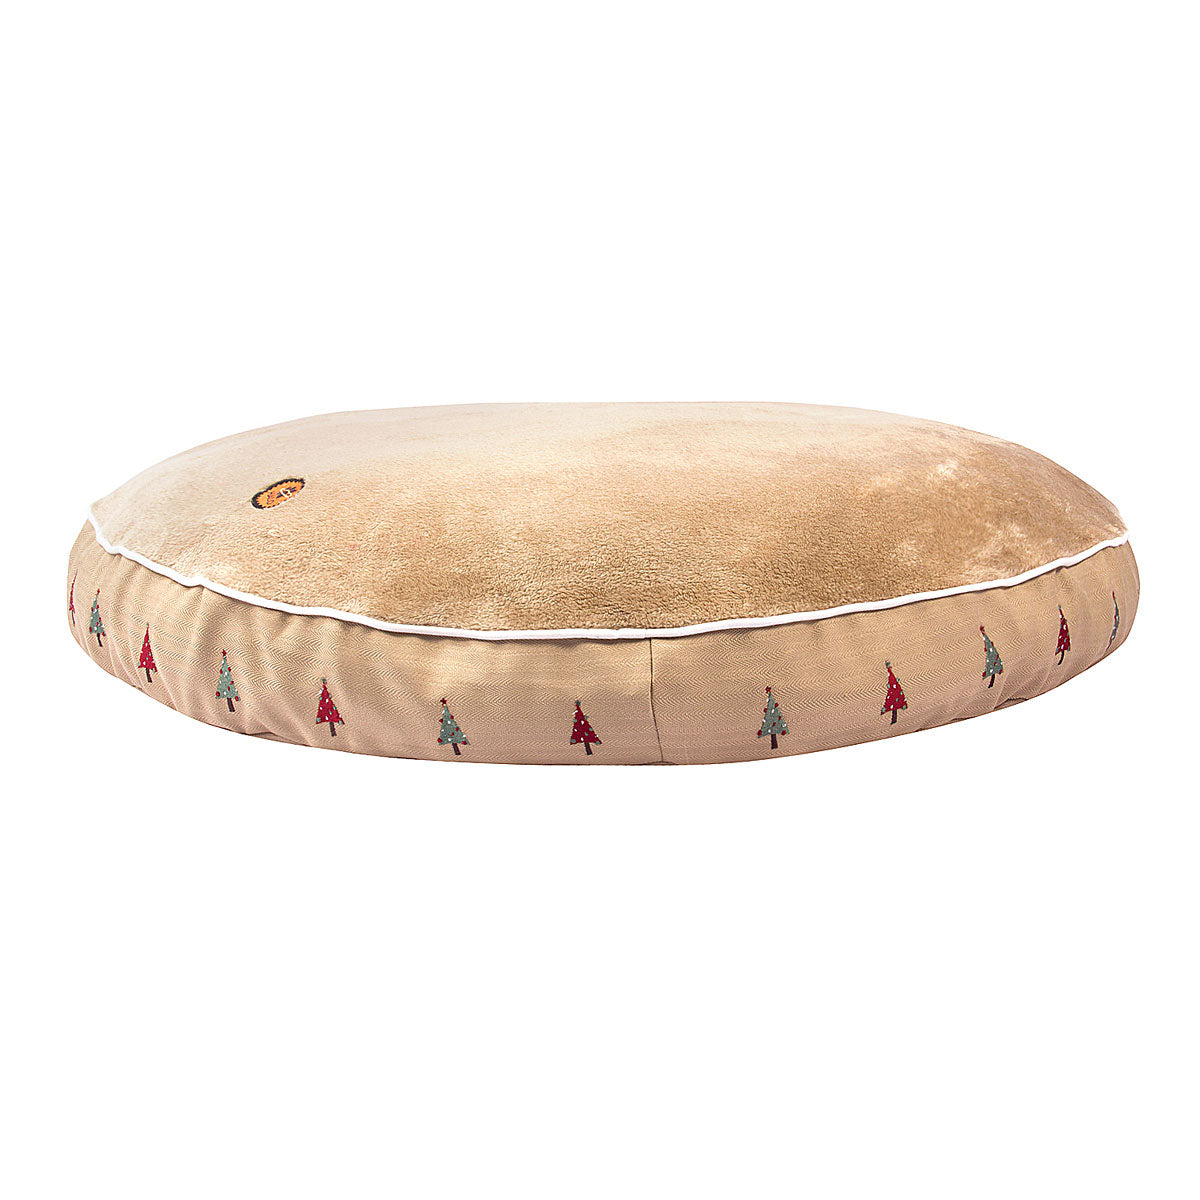 Halo Christmas Tree Round Dog Bed - Halo - Breeches.com